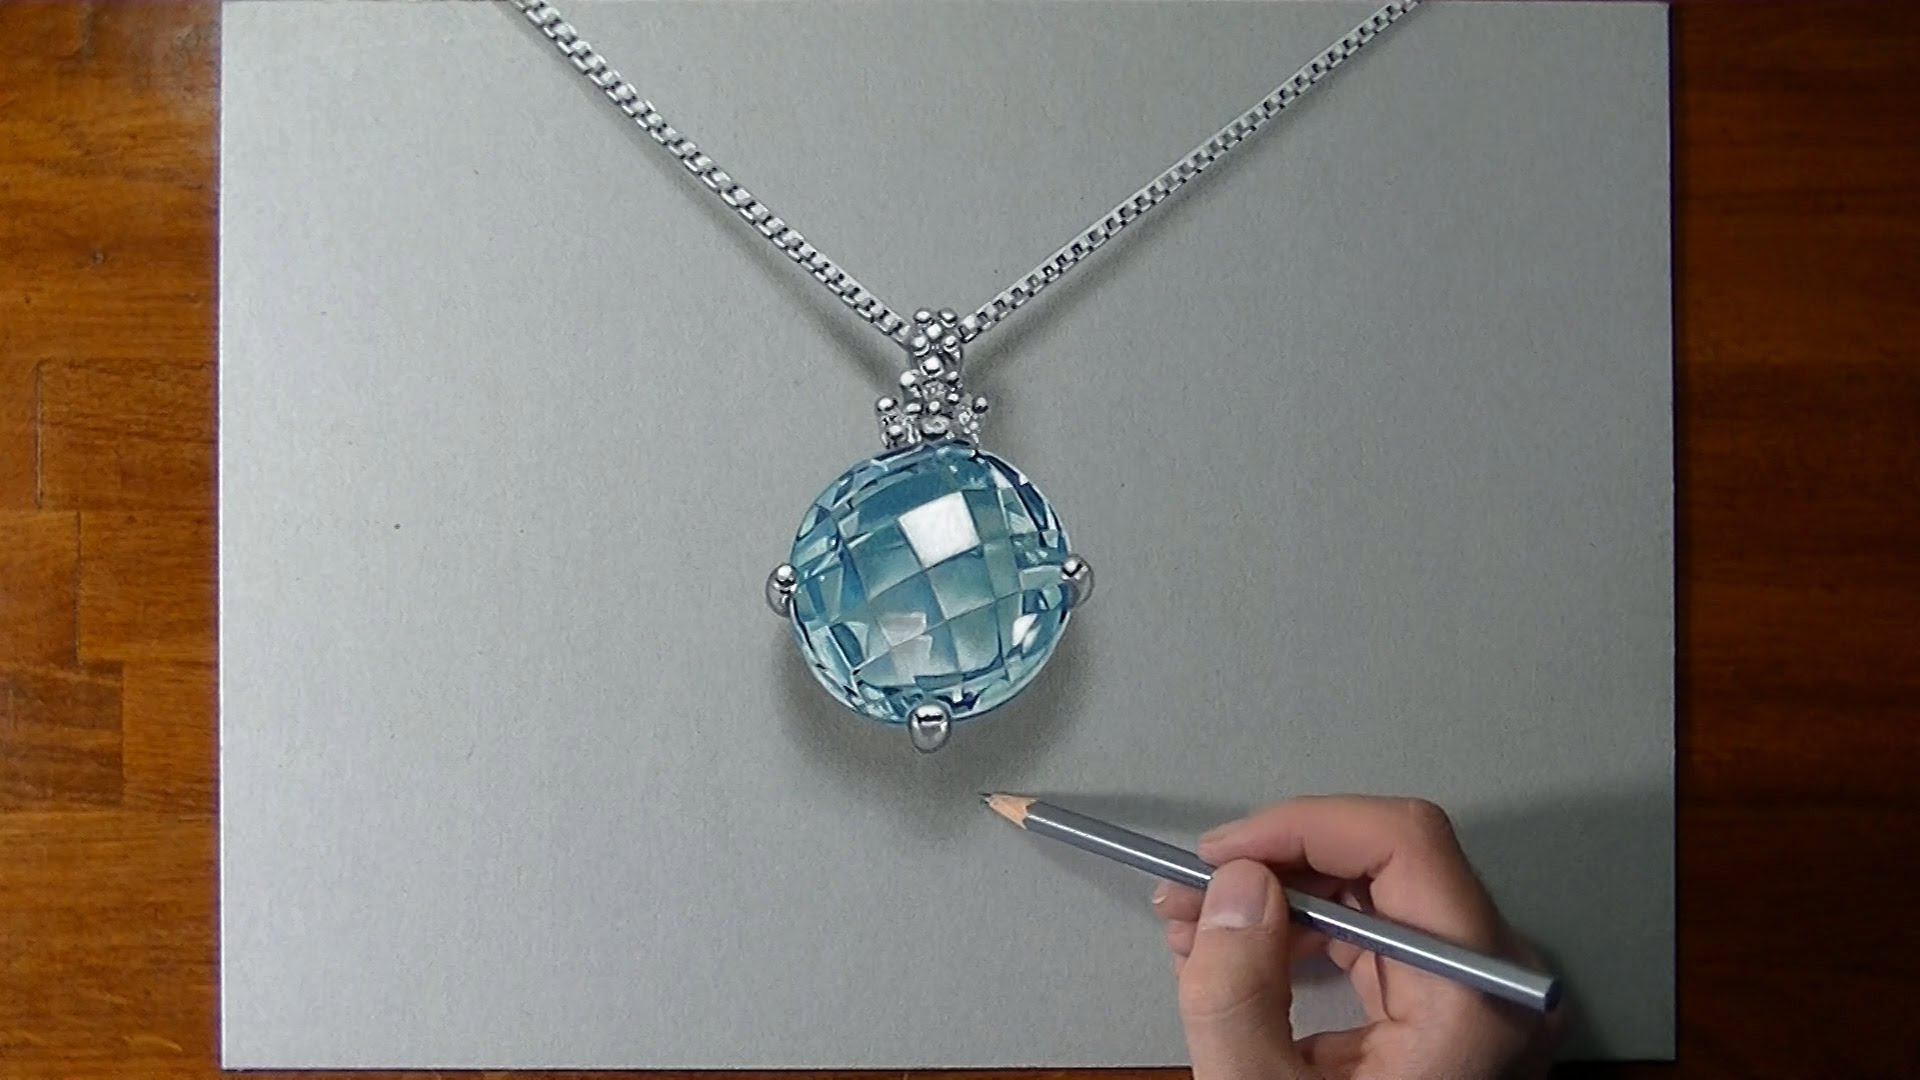 Drawn necklace  3D to draw a